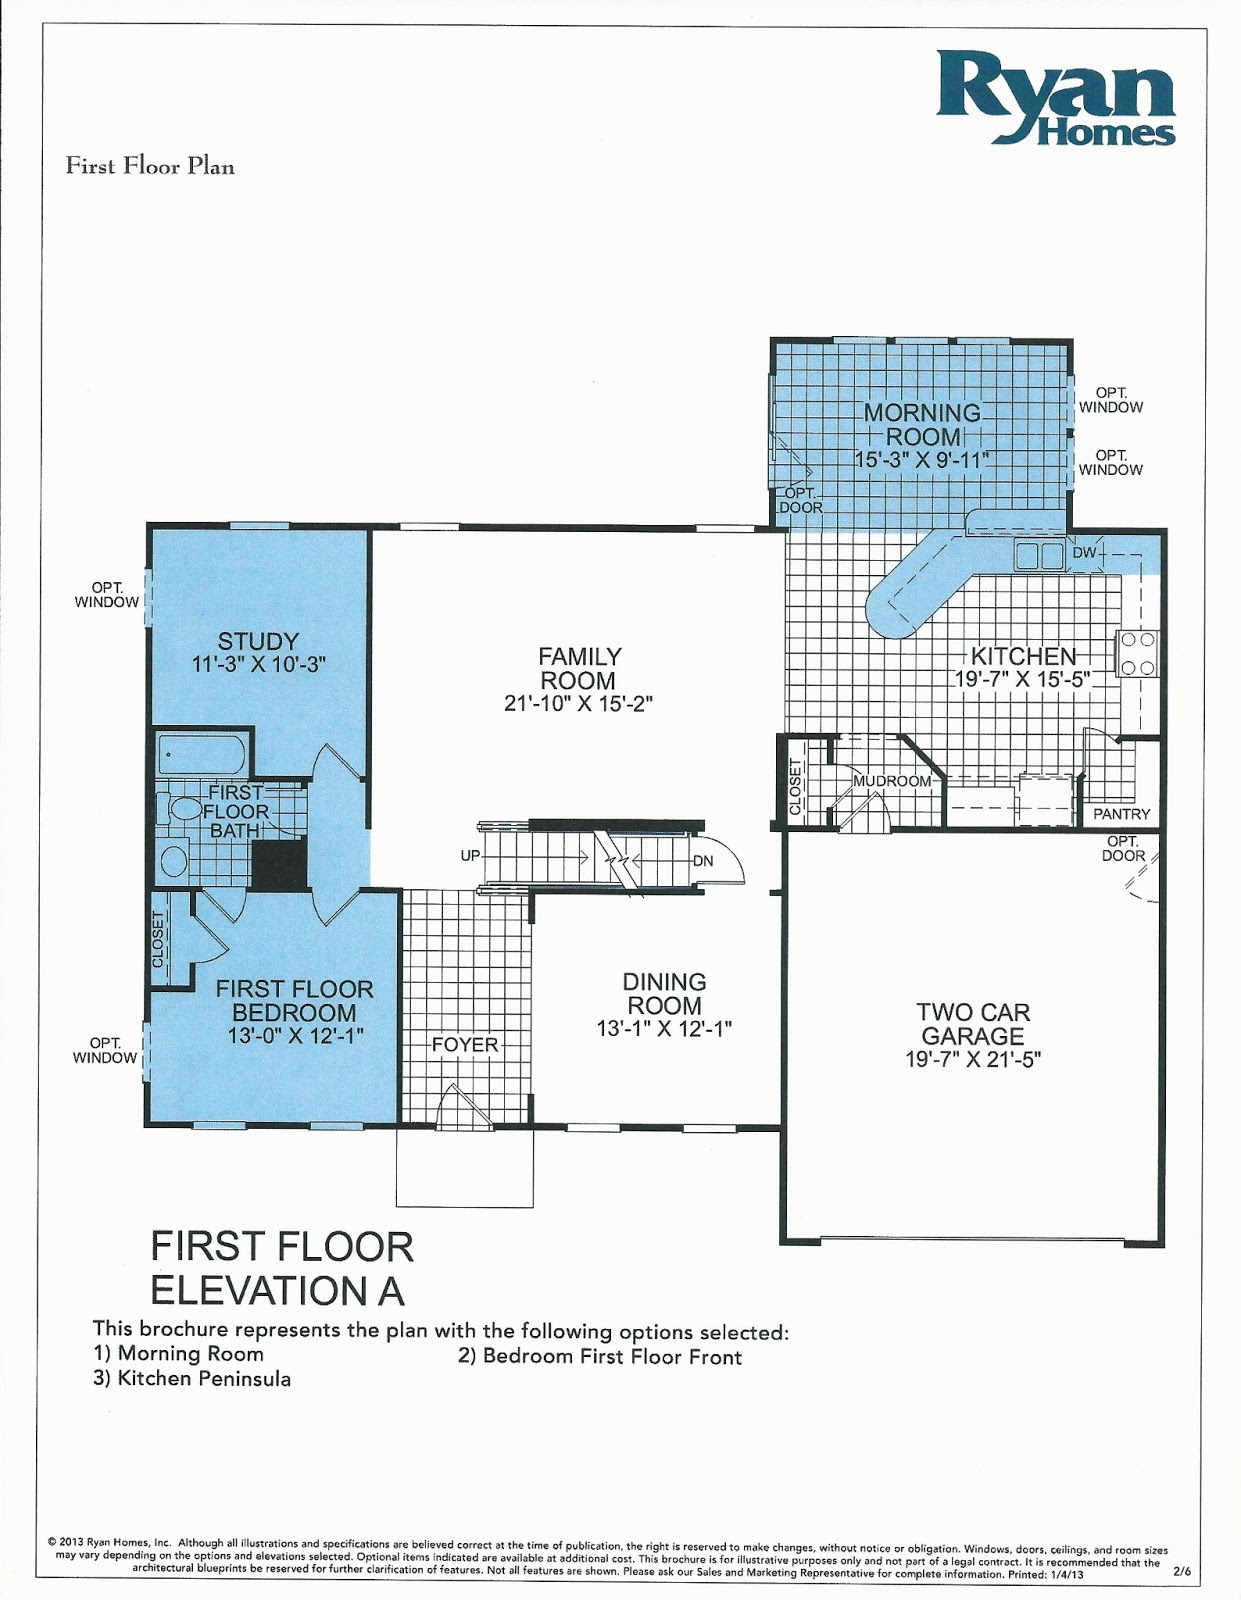 Building A Verona With Ryan Homes Verona Floor Plan